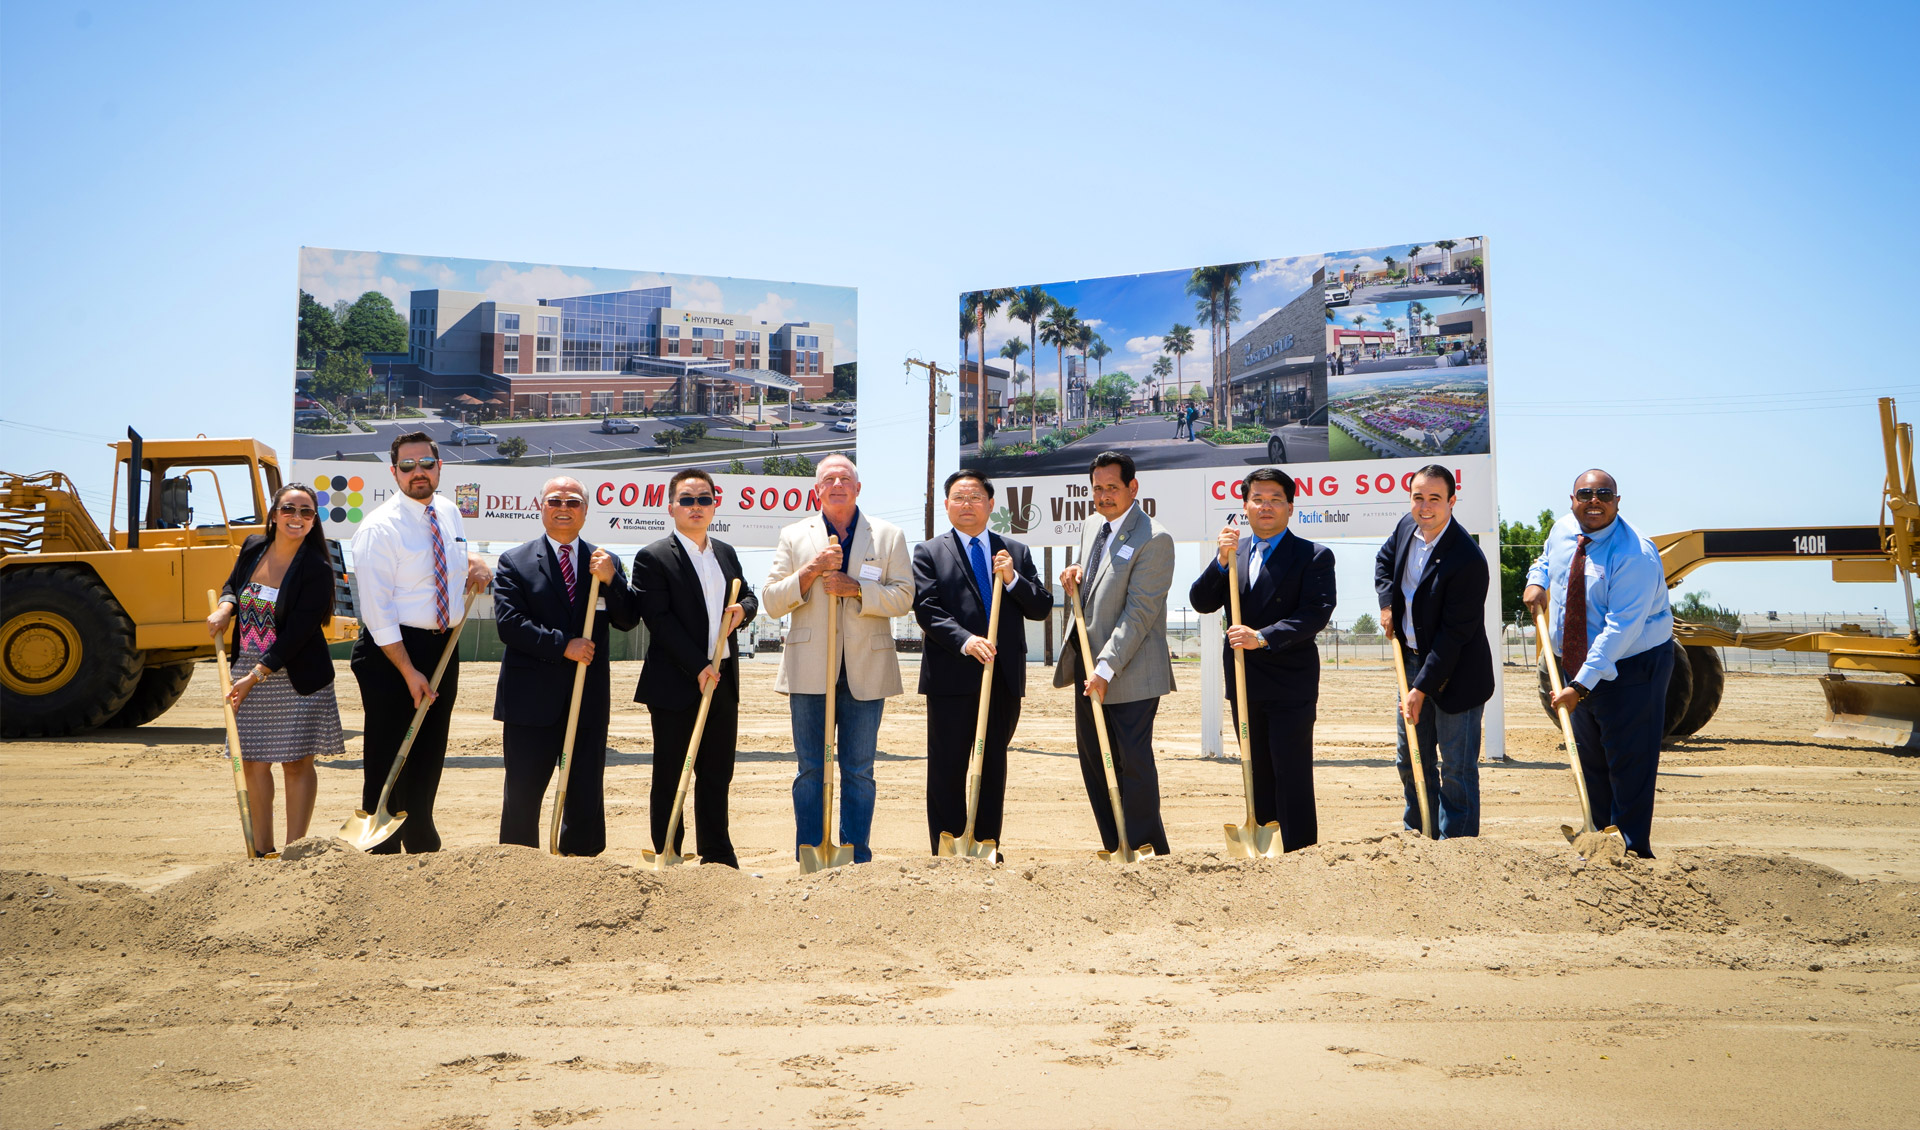 Vineyard Lifestyle Center & Hyatt Place Hotel Ground Breaking Ceremony